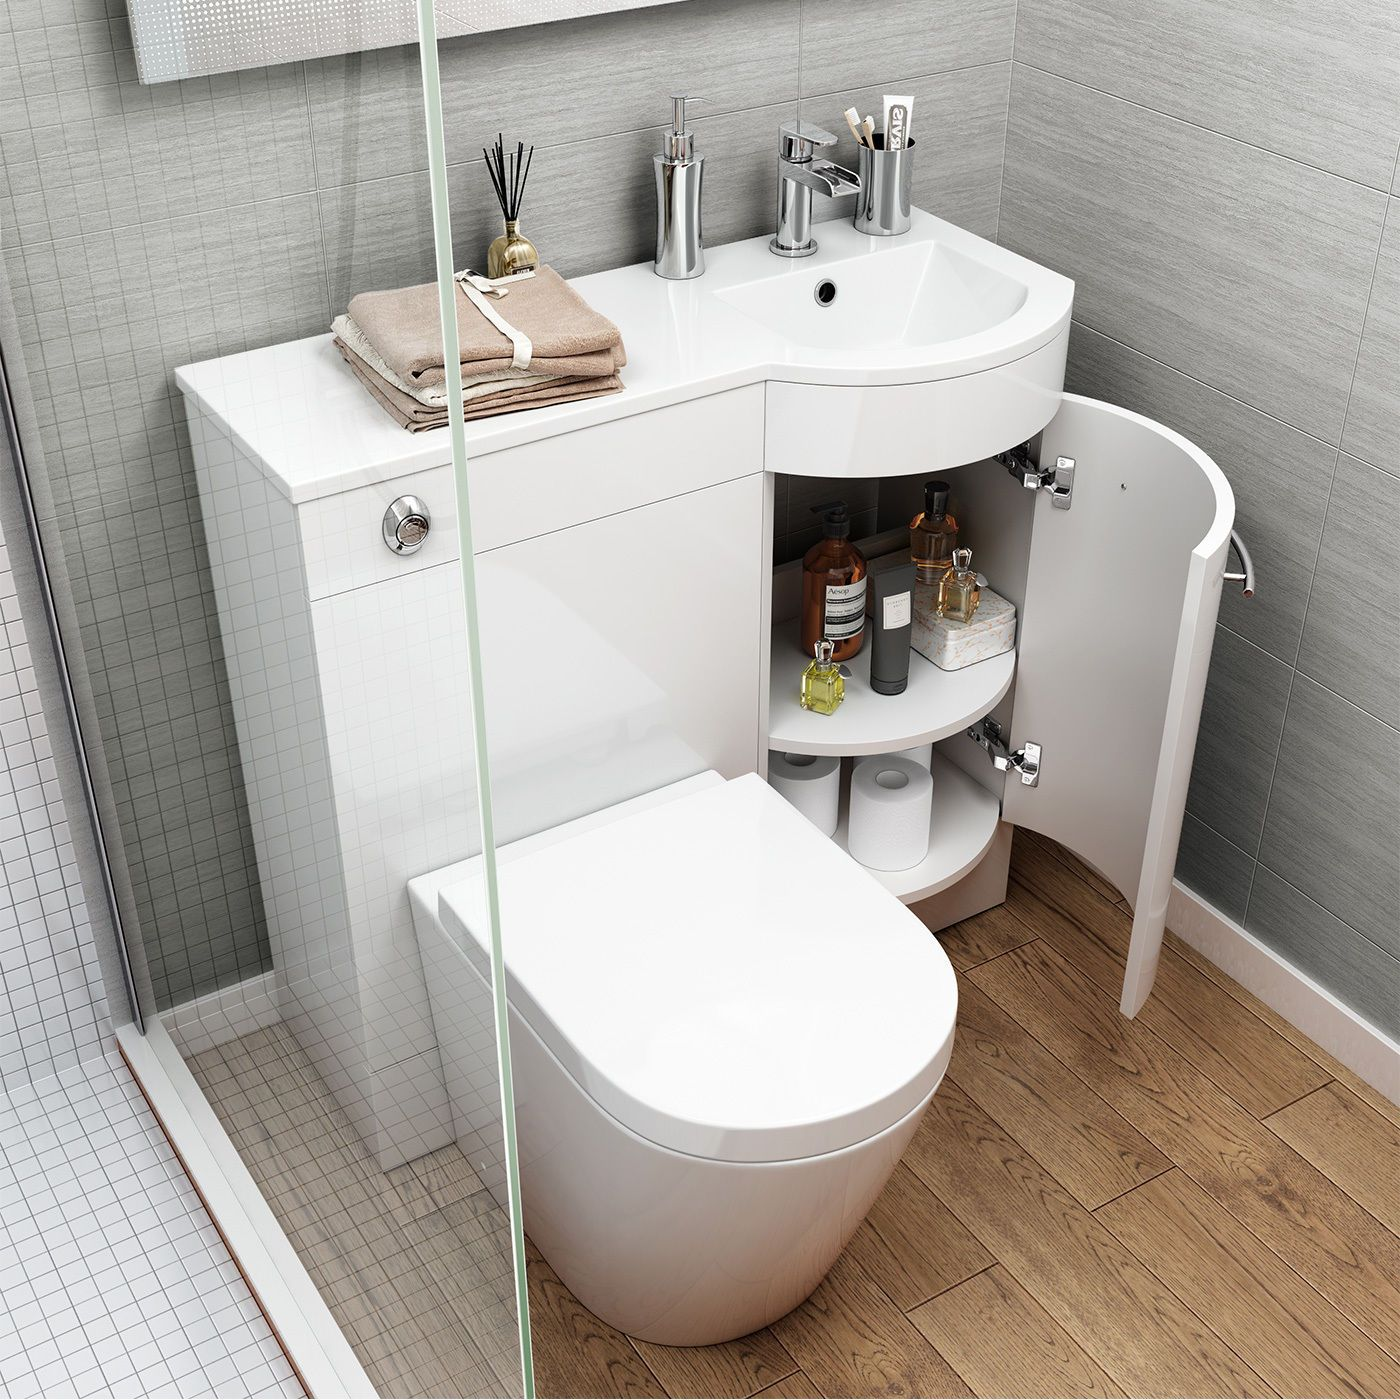 Modern White Gloss Bathroom Vanity Unit Sink Toilet Choice Of 900mm And 1200mm White Gloss Finish Choic Small Toilet Bathroom Vanity Units Mold In Bathroom